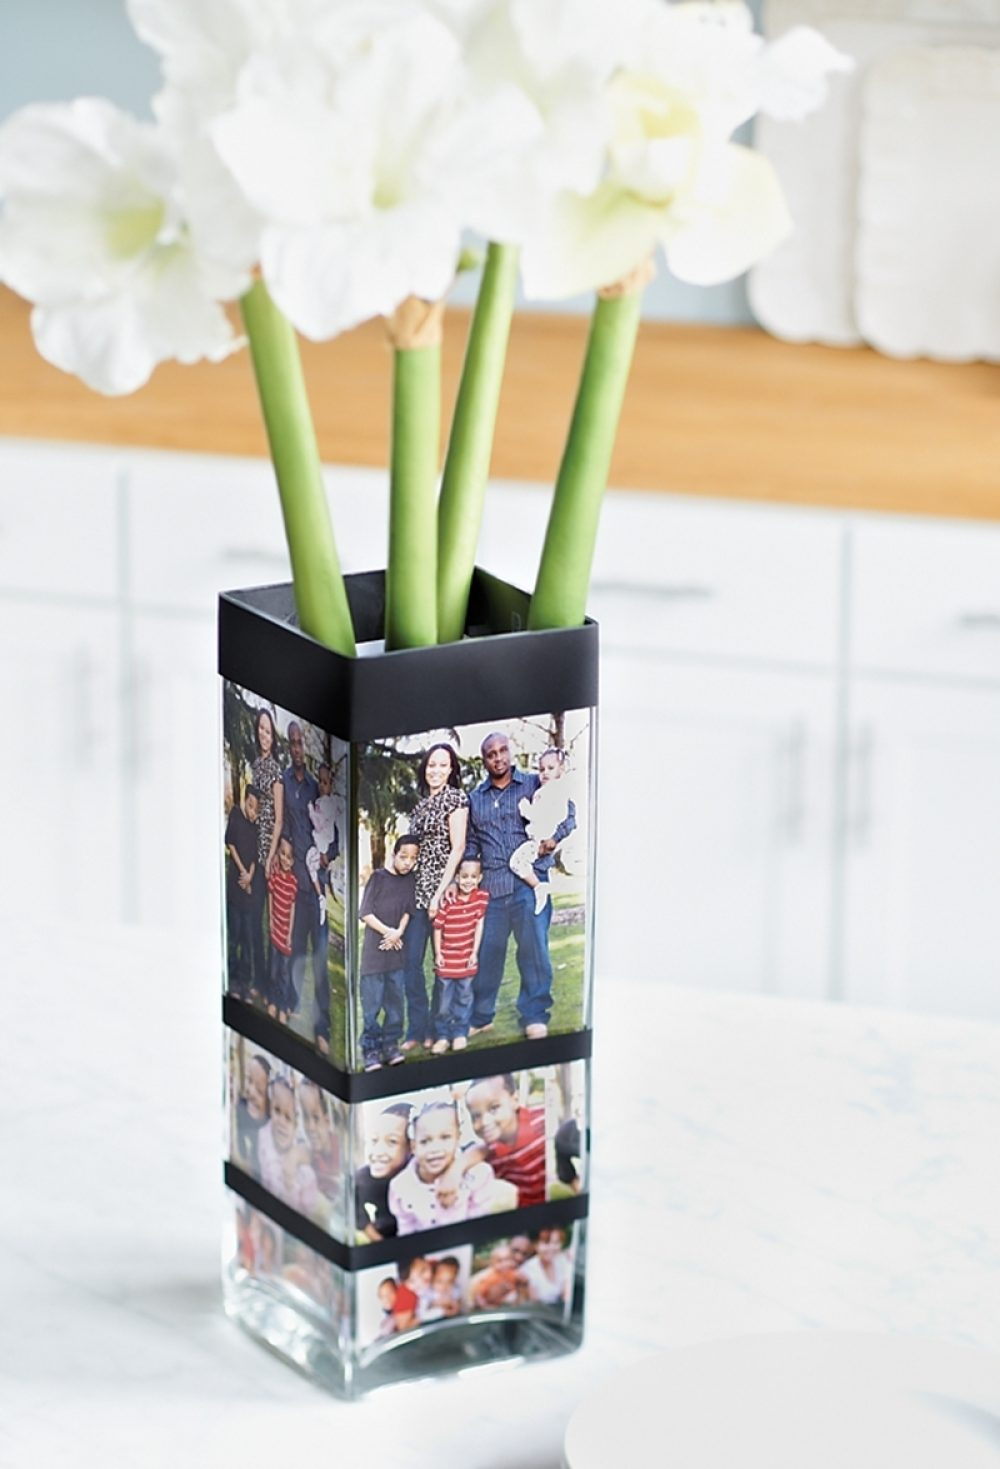 A vase is adorned with family photographs.